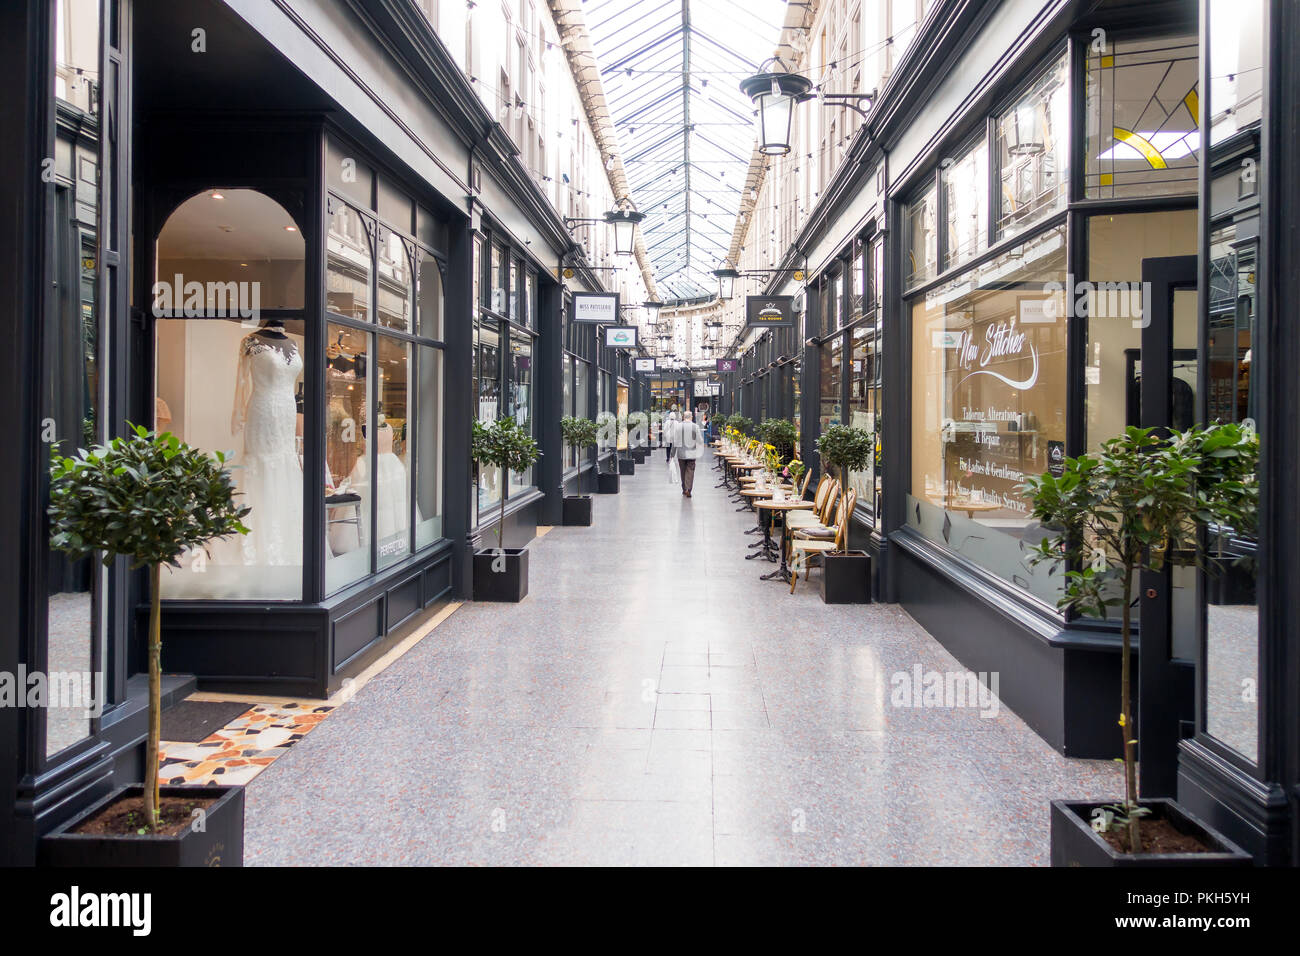 Cardiff, United Kingdom -  September 07, 2017: Castle Quarter Arcade with shops and coffee shops in Cardiff city center. - Stock Image